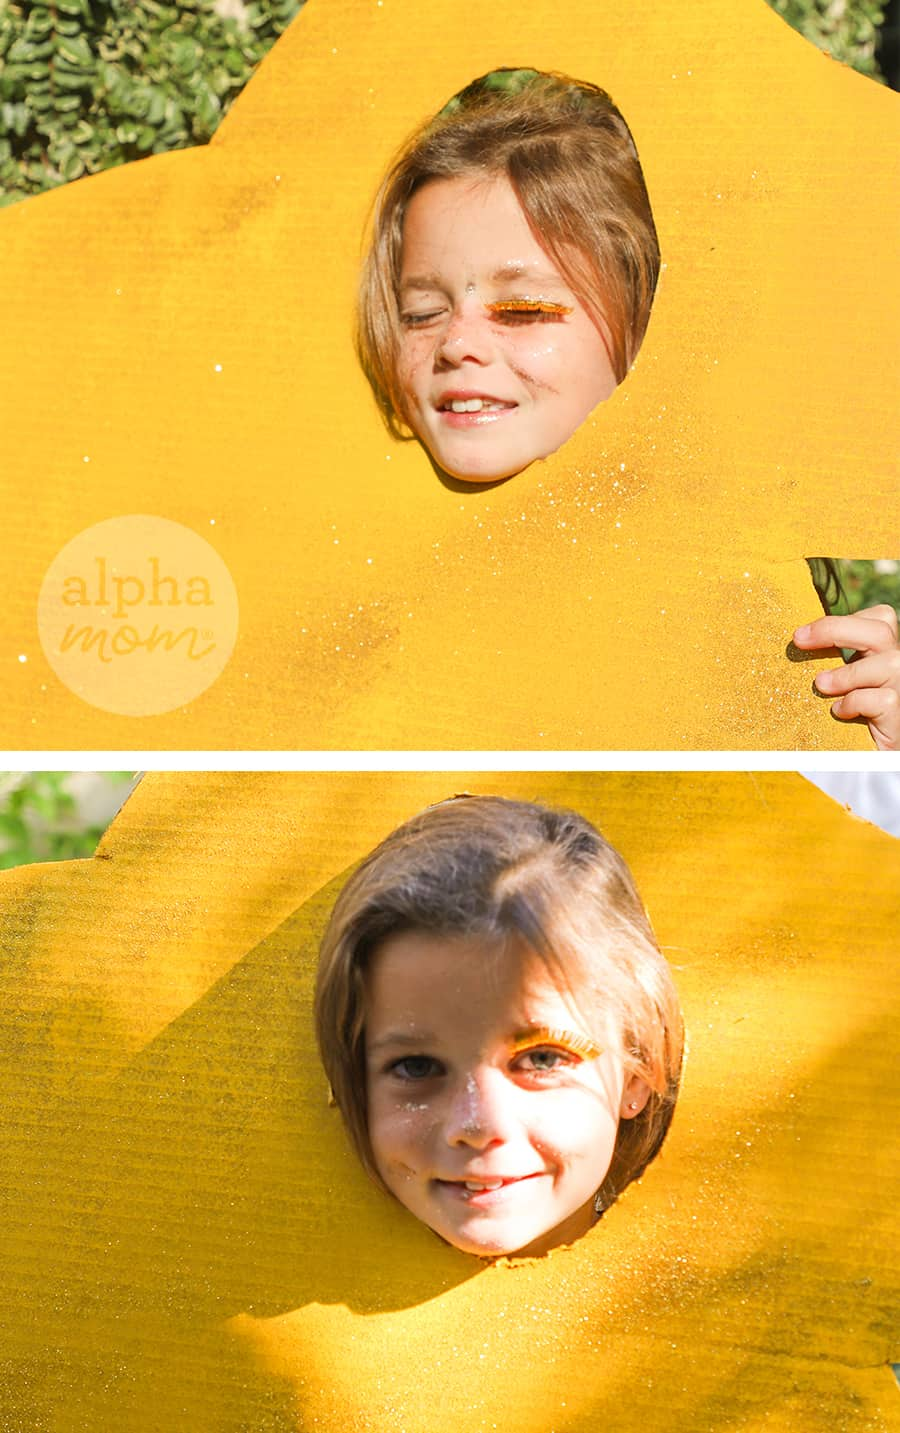 two photos of a girl poking her head through a gold cardboard cut into a star